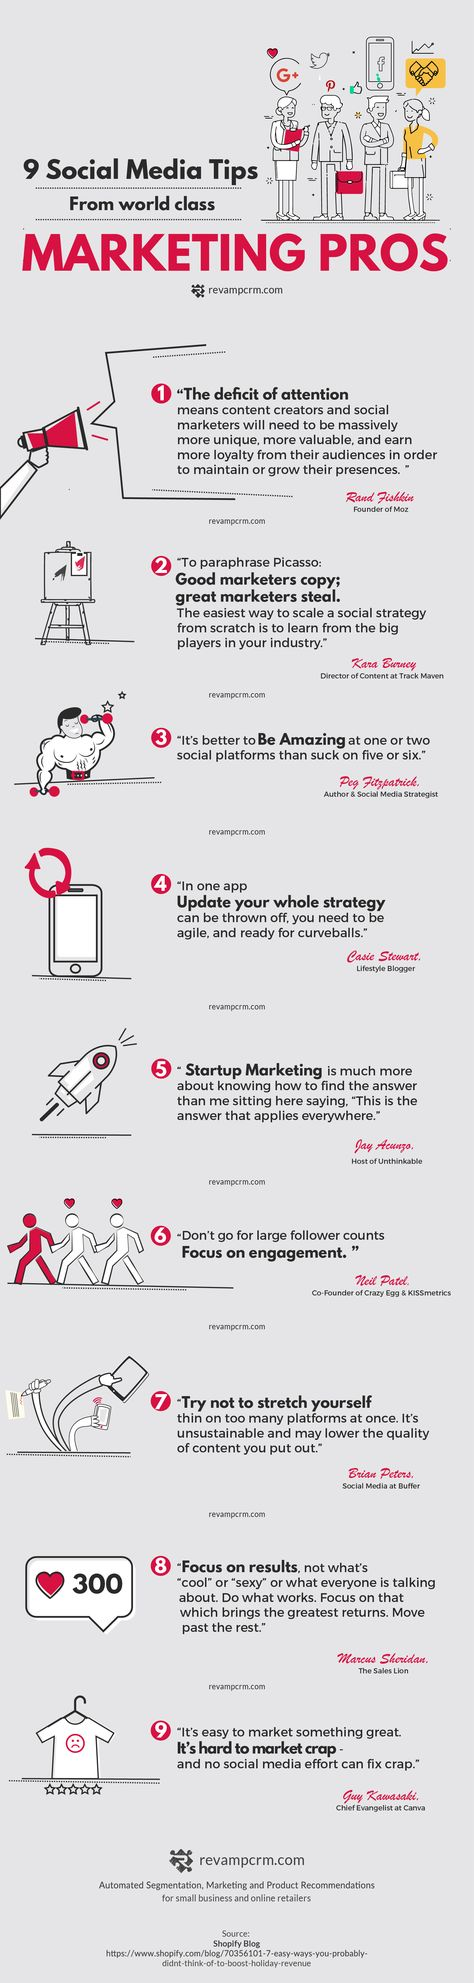 9 Social Media Tips From World Class Marketing Pros [ Infographic ]